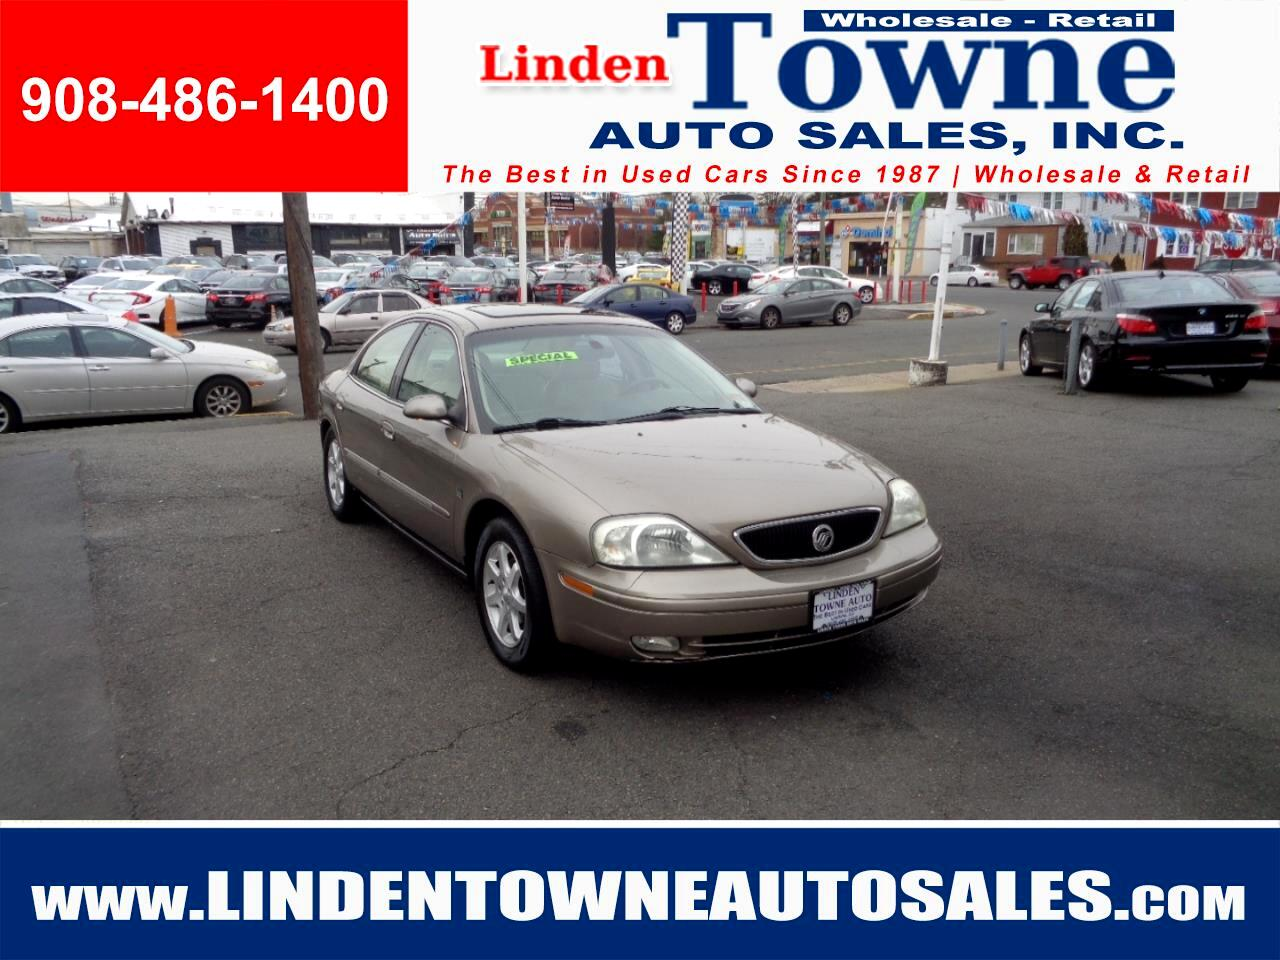 Mercury Sable LS Premium 2002